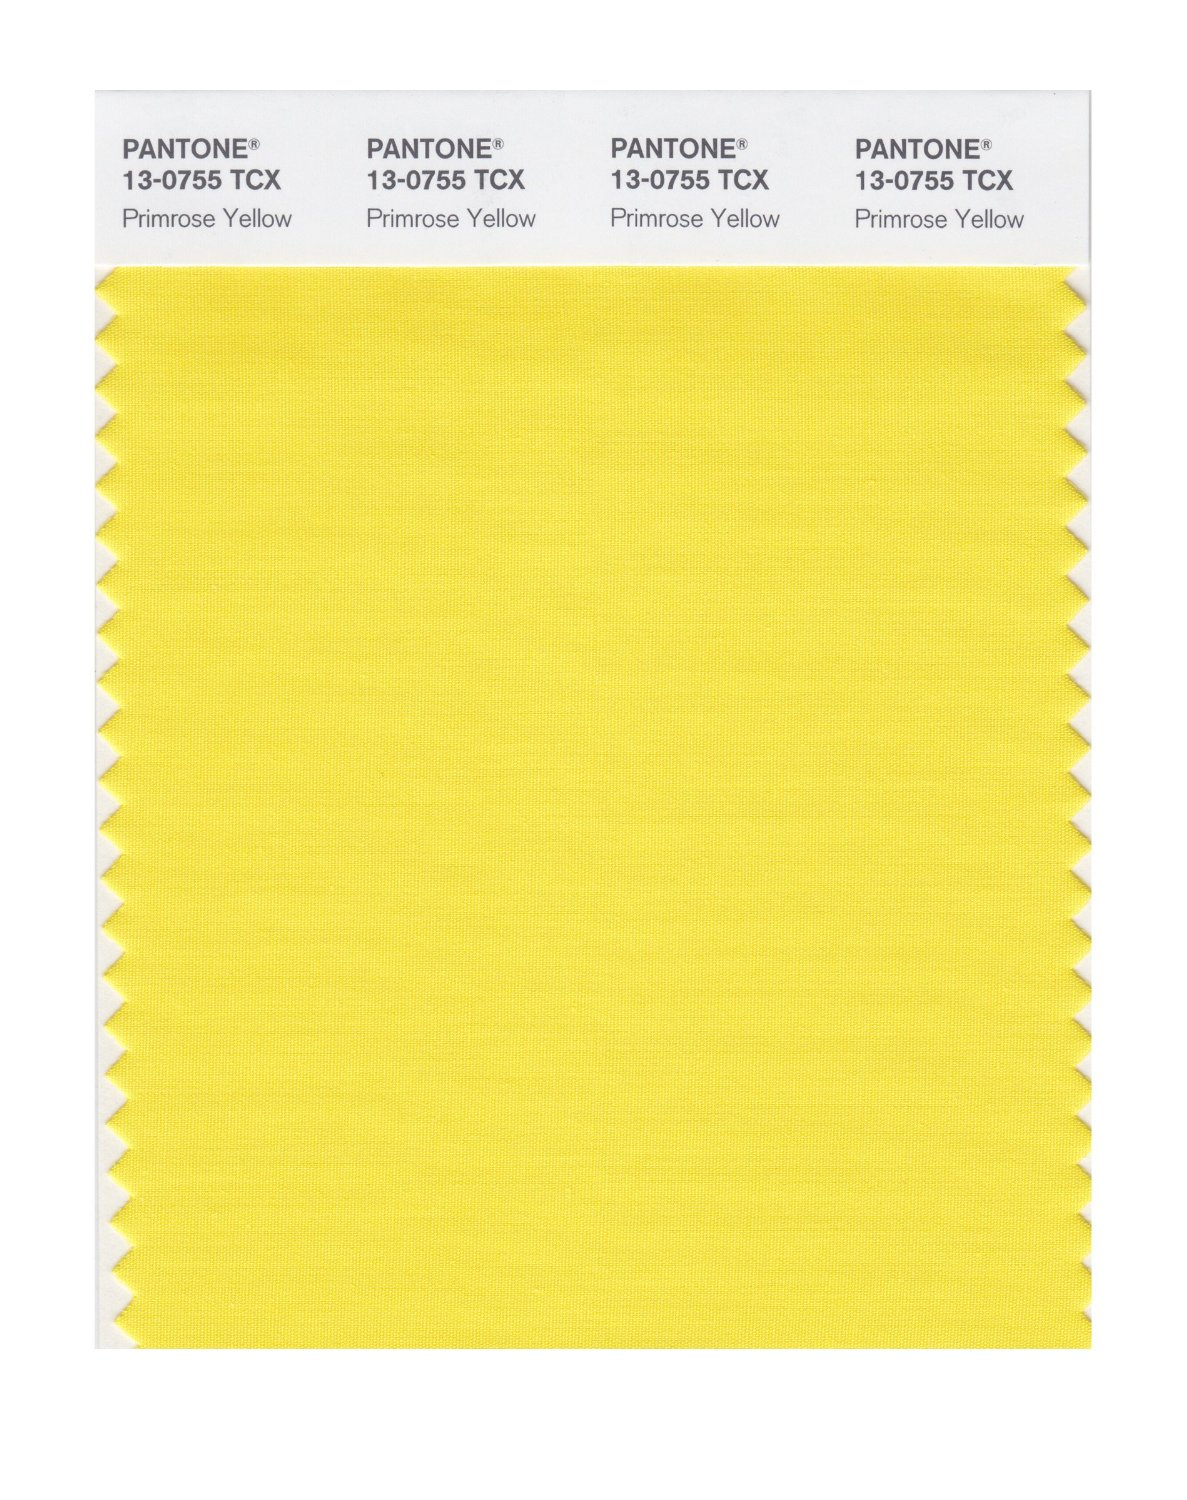 Pantone Smart Swatch 13-0755 Primrose Yellow